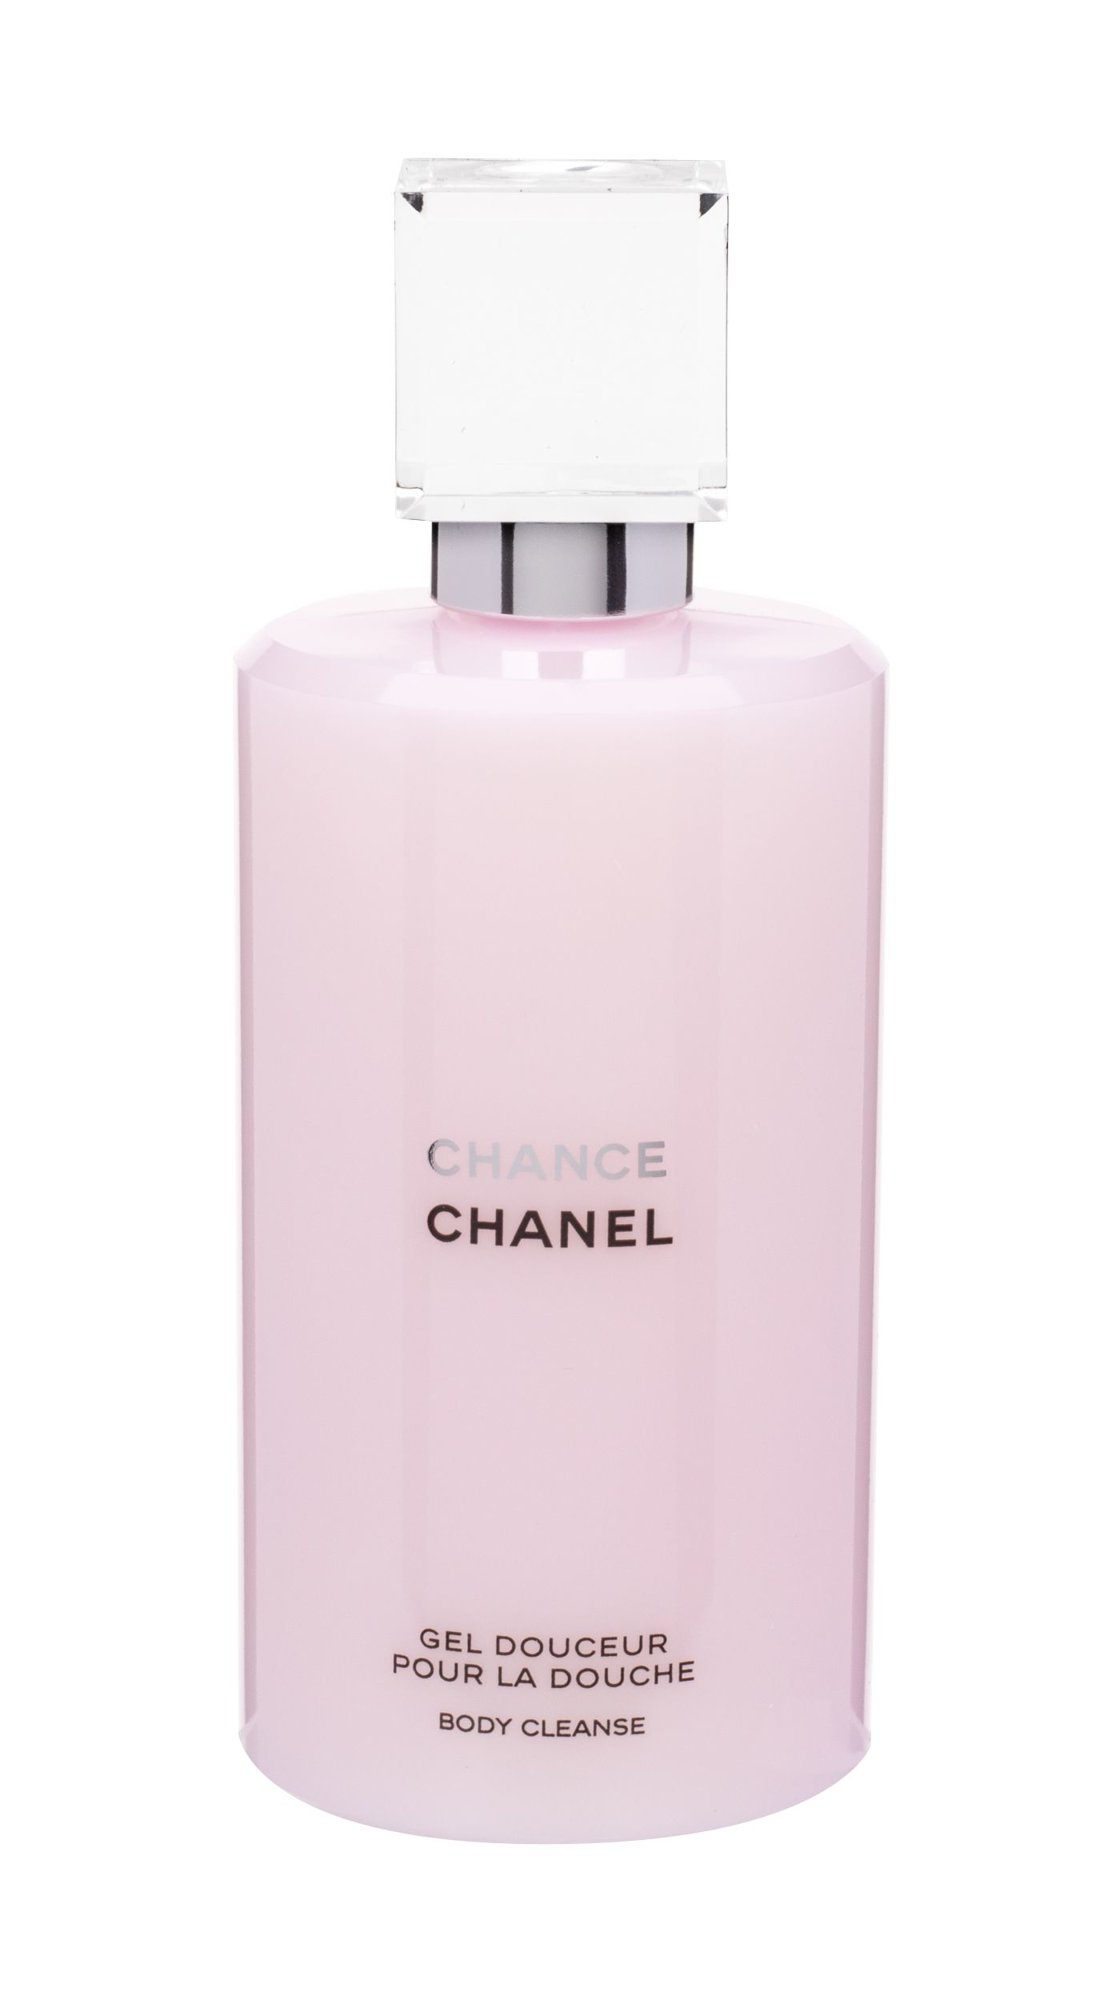 Chanel Chance Shower gel 200ml